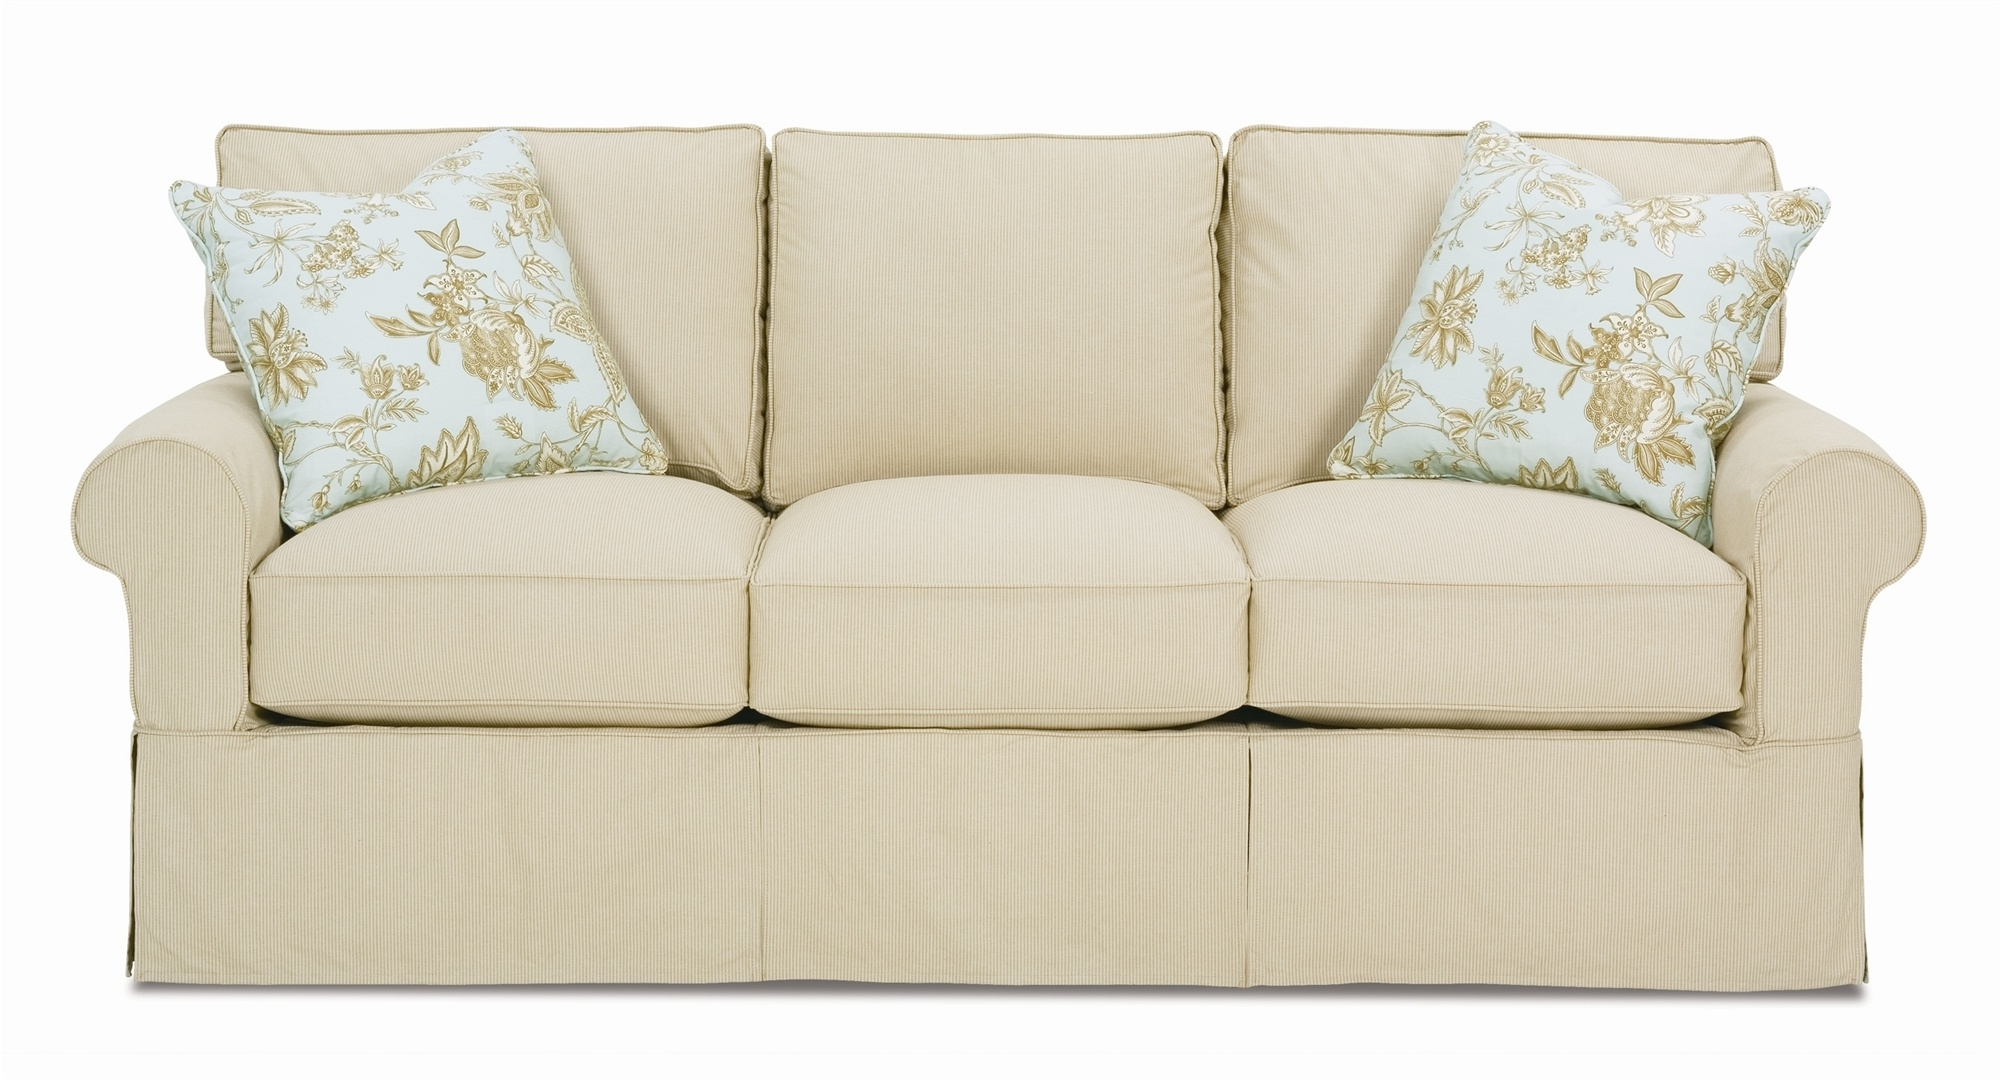 Chair Slipcovers For Slipcovers Sofas (View 5 of 20)